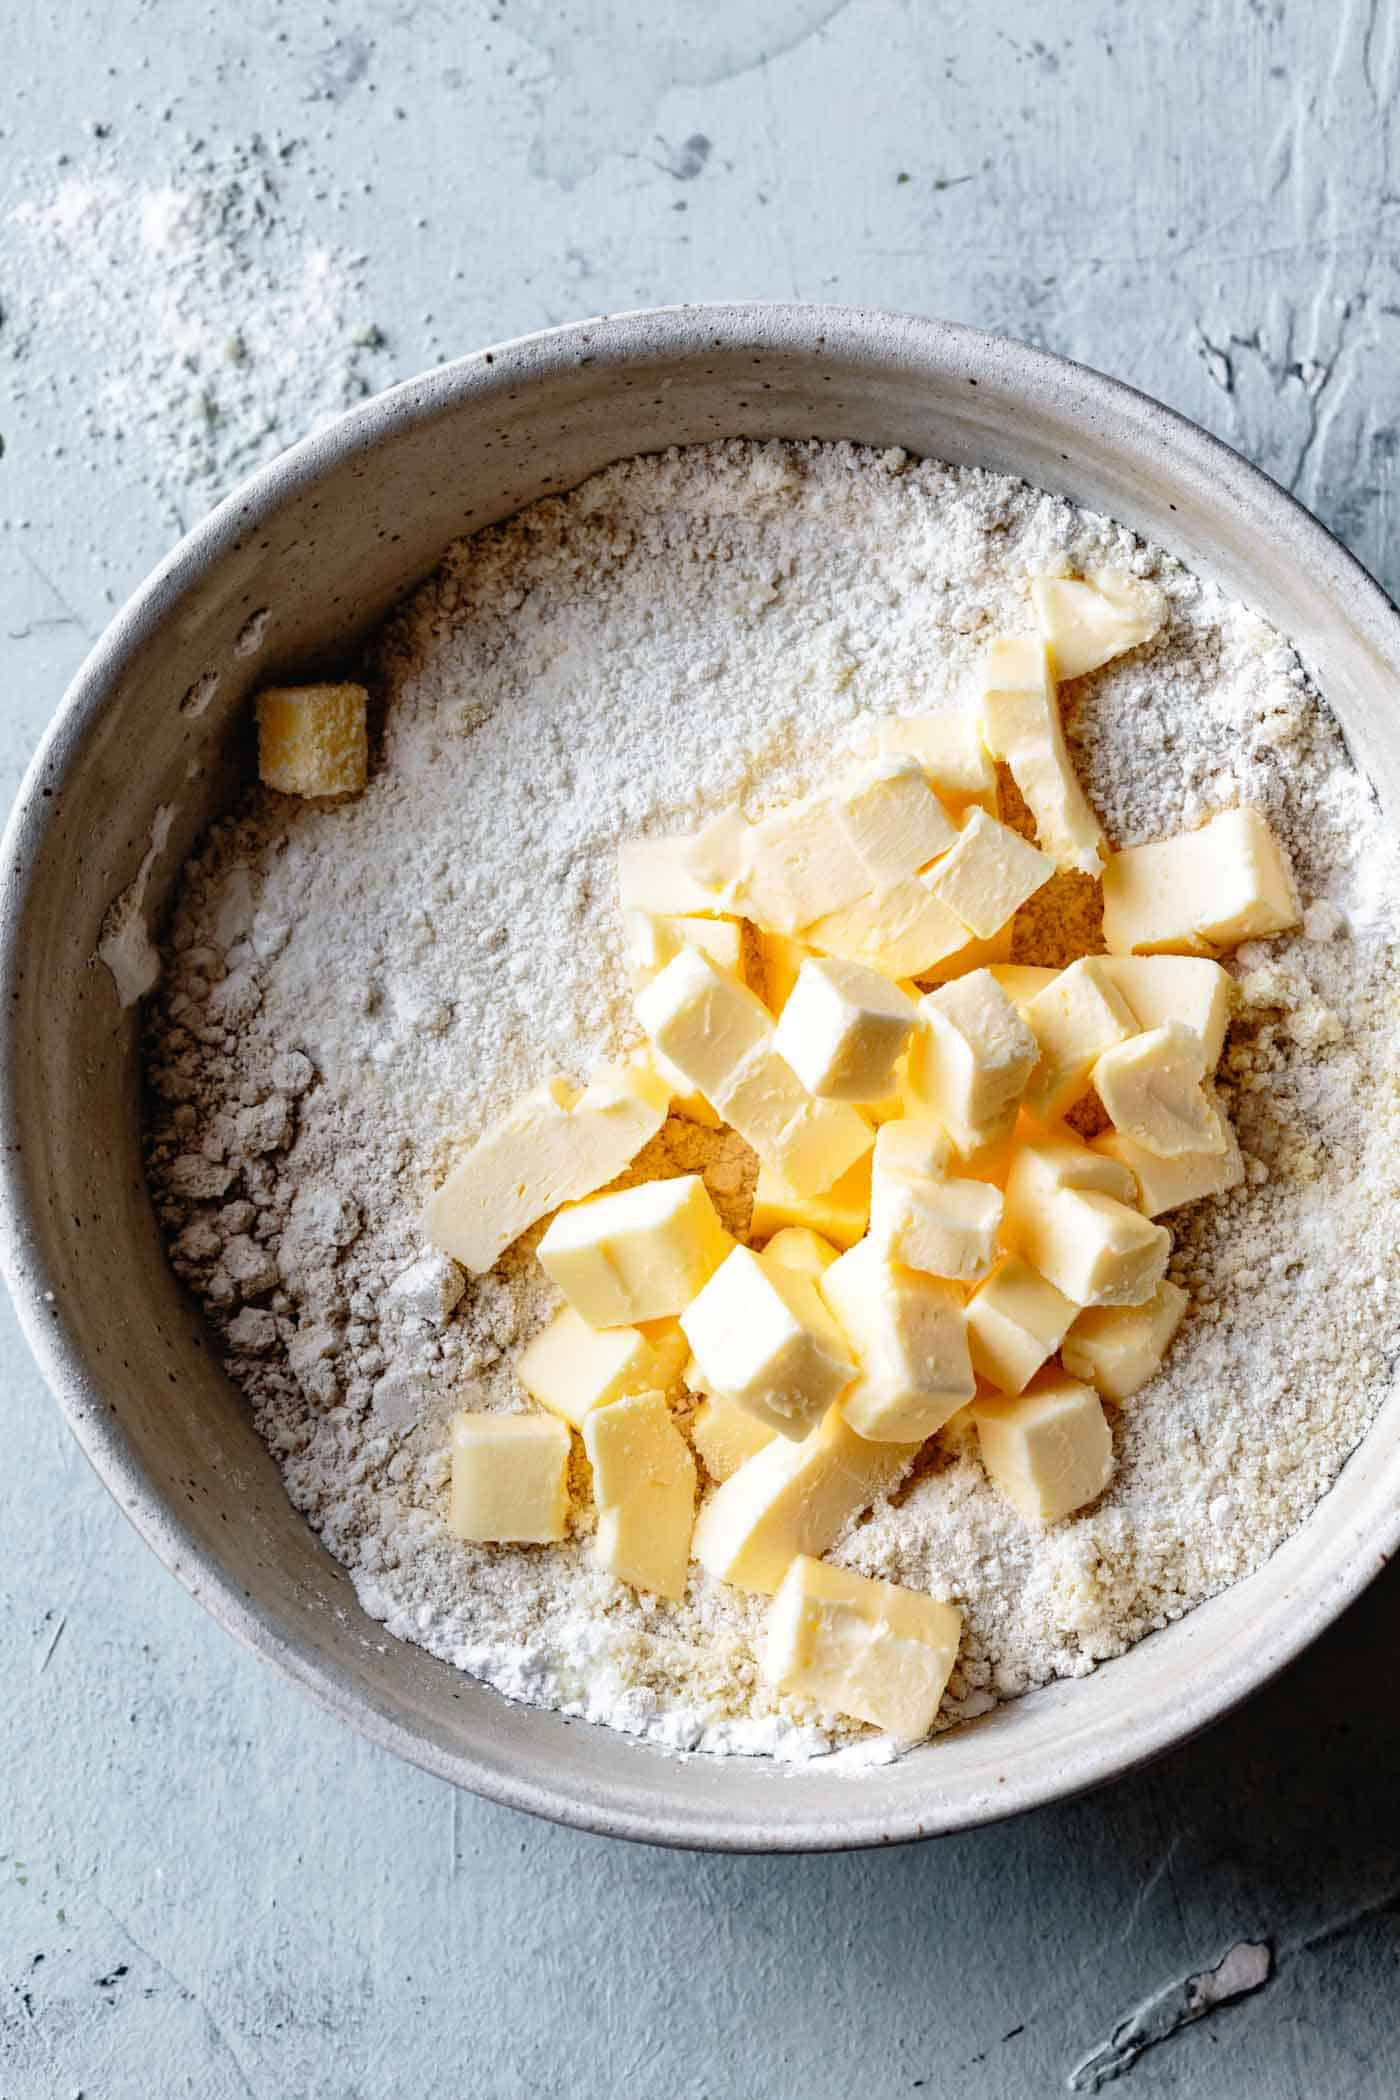 ingredients for gluten-free shortbread crust with almond flour